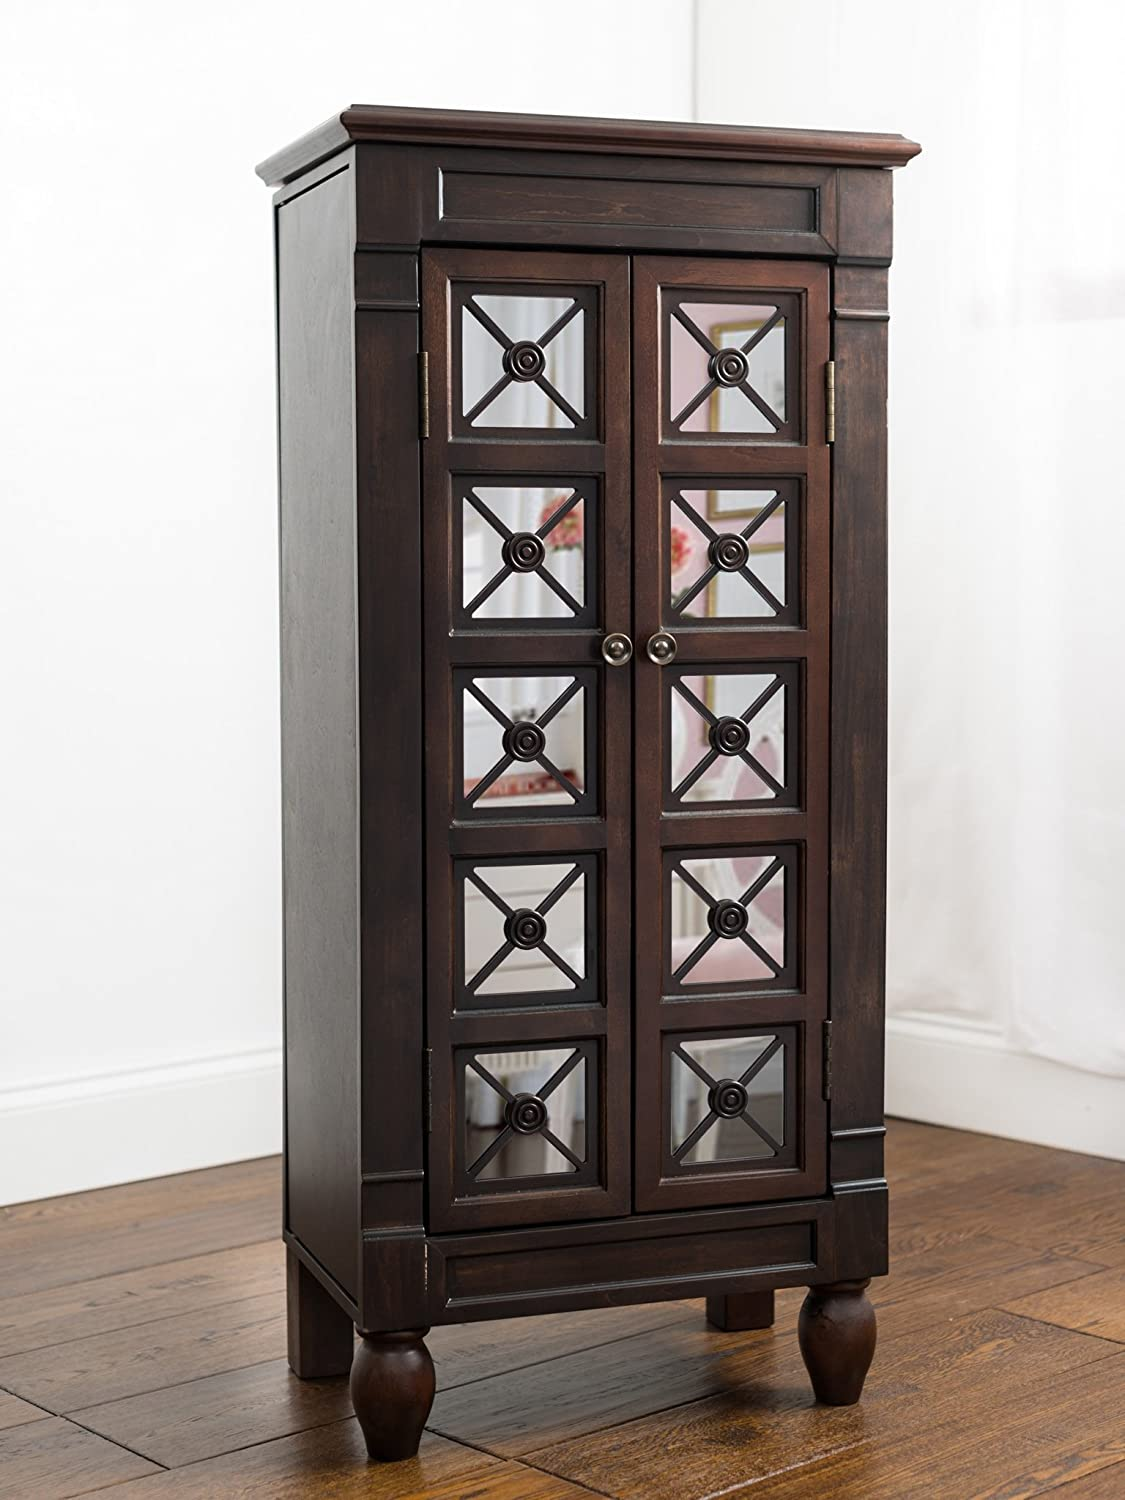 Hives and Honey Kelly Espresso Jewelry Armoire Jewelry Stand Jewelry Chest Hives & Honey 1004-412